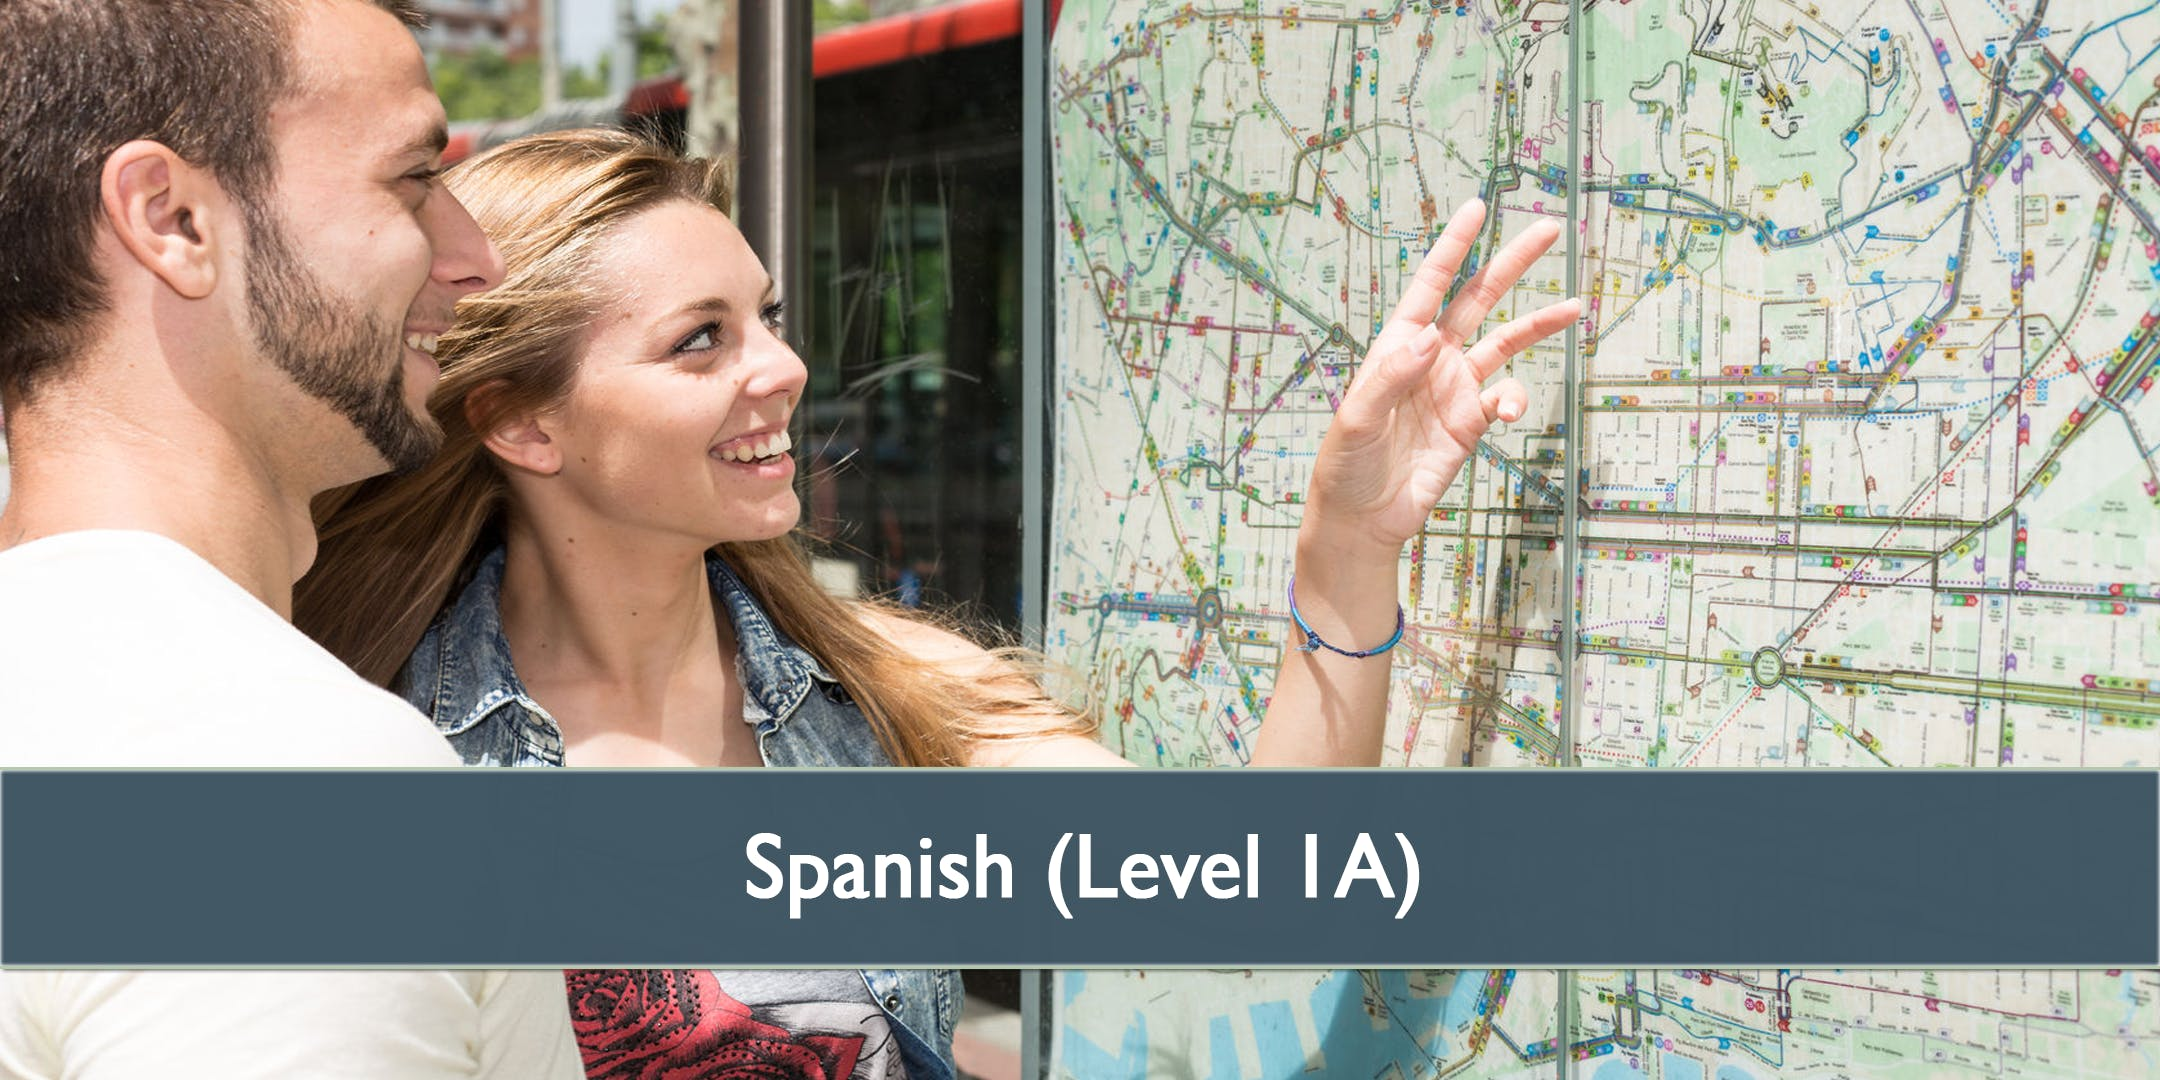 Spanish (Level 1A) - January 2019